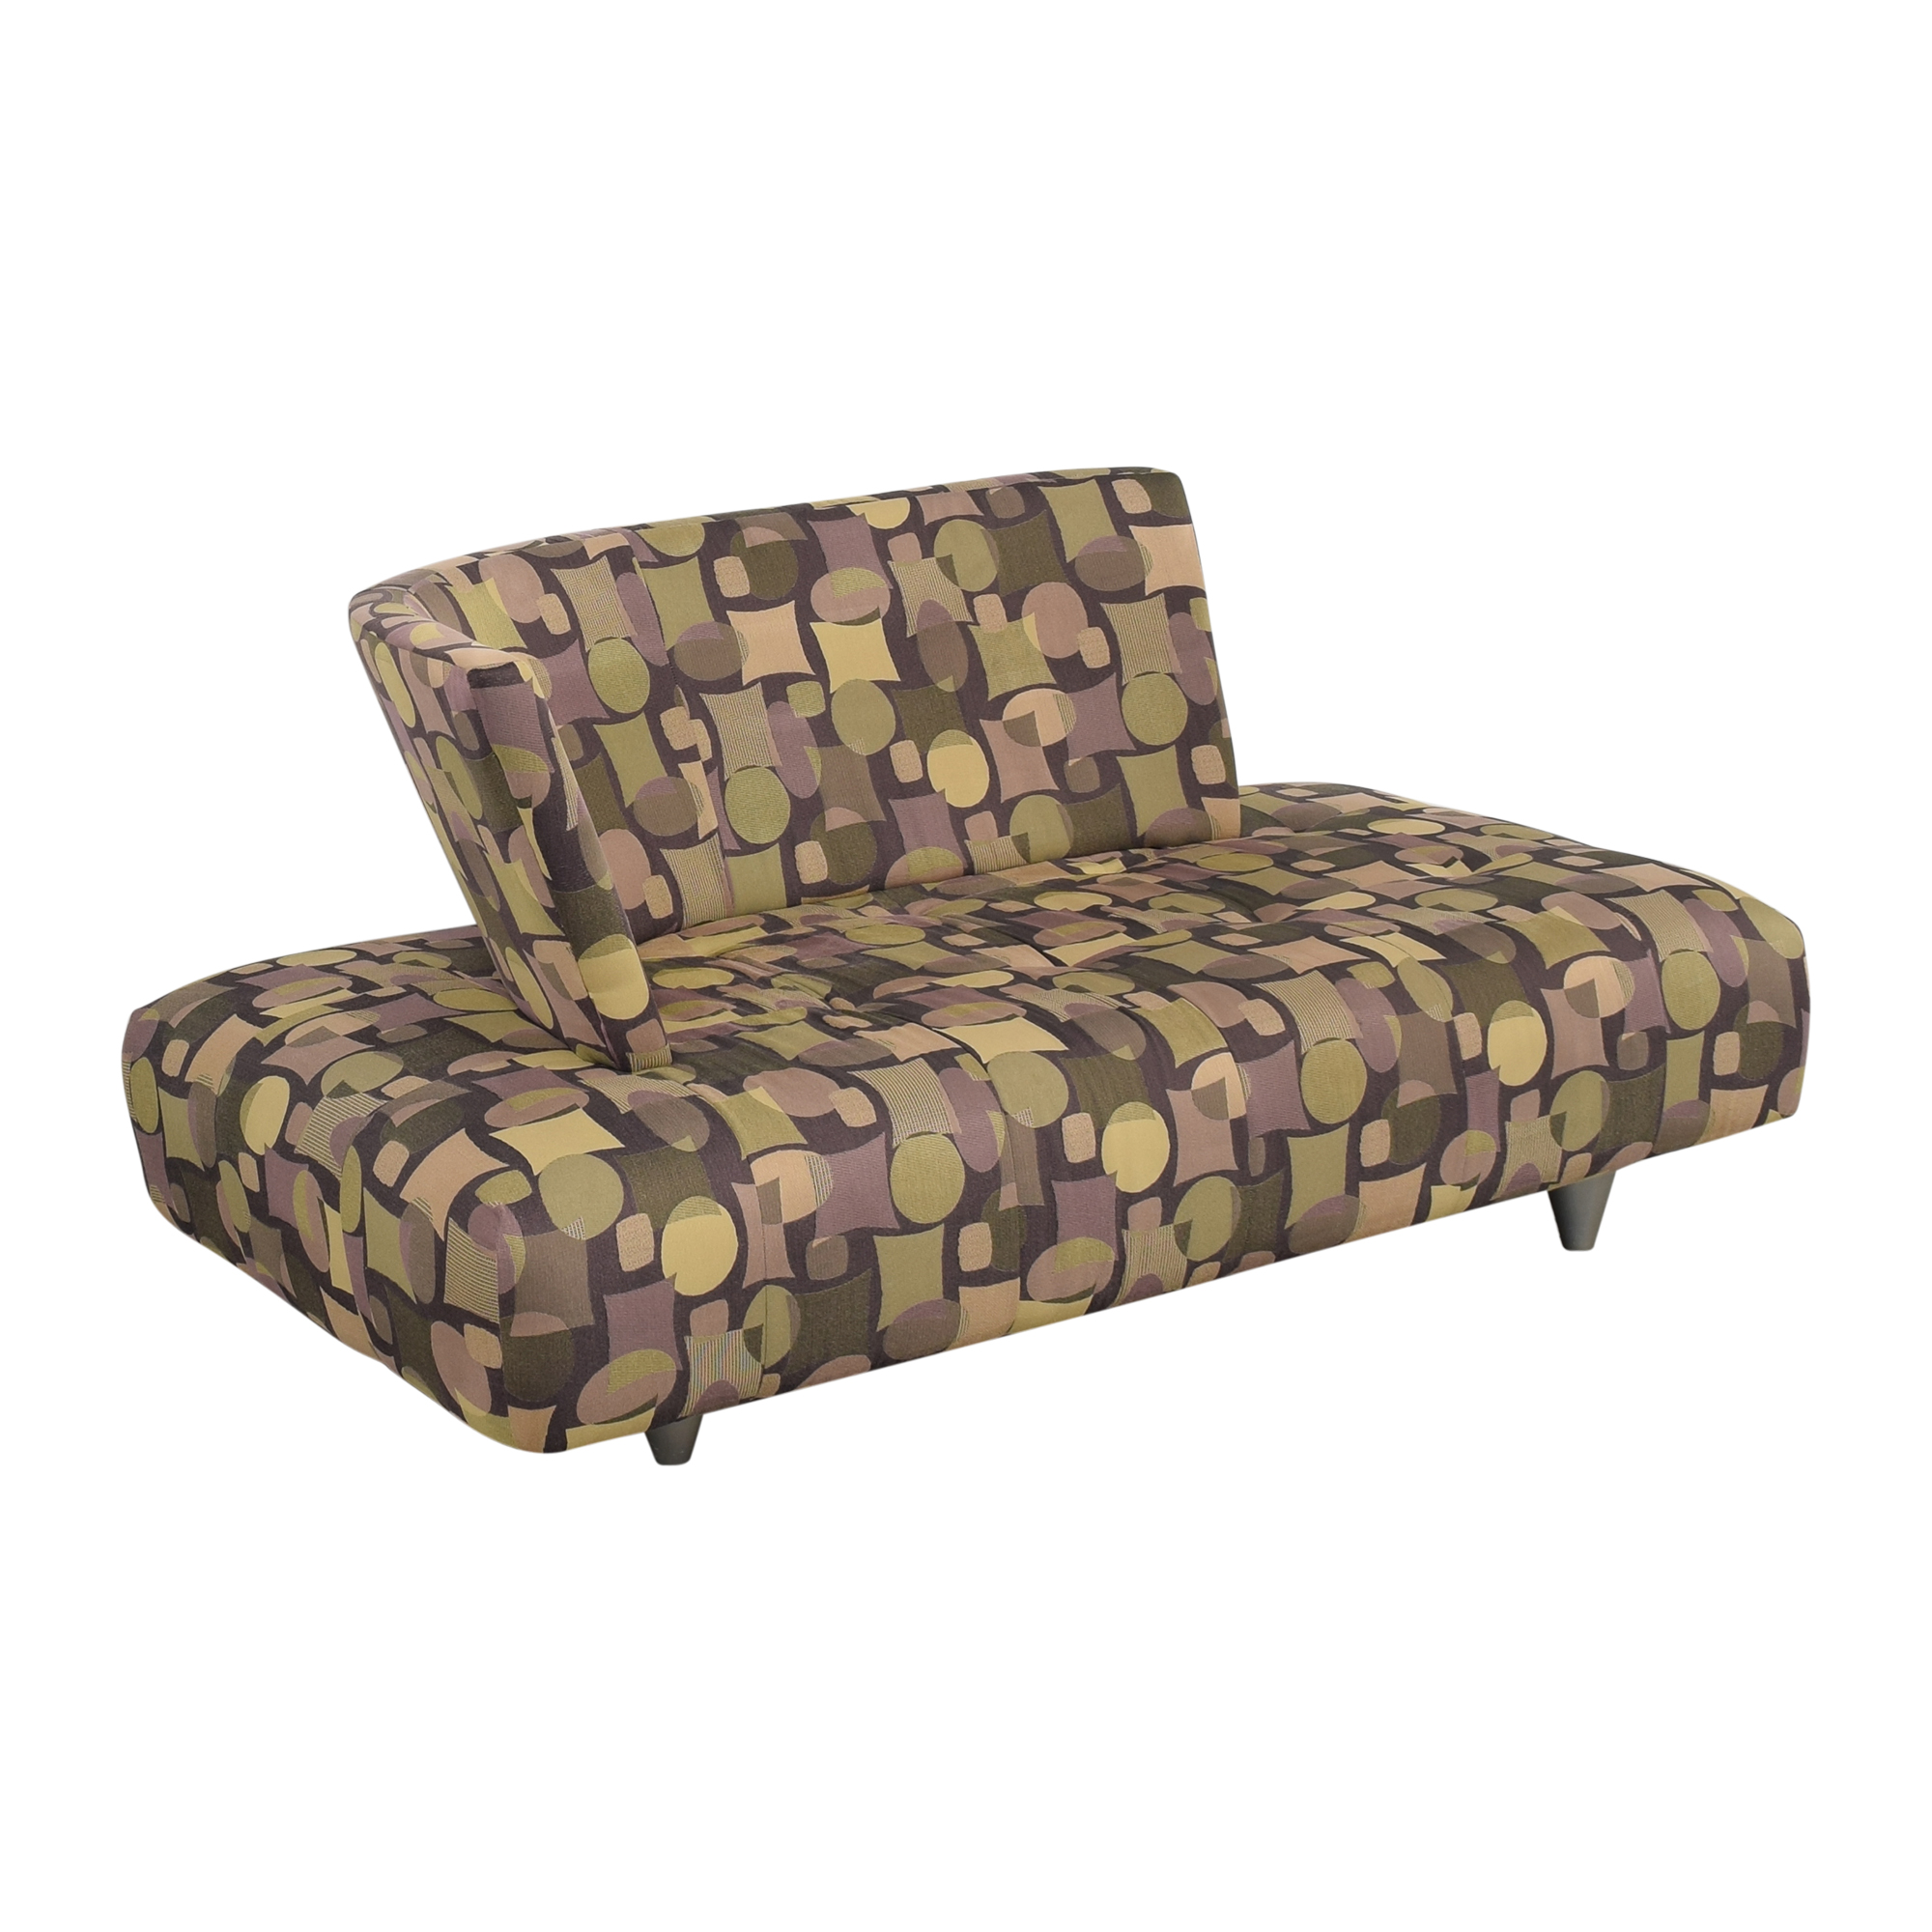 Retro Style Chaise Lounge